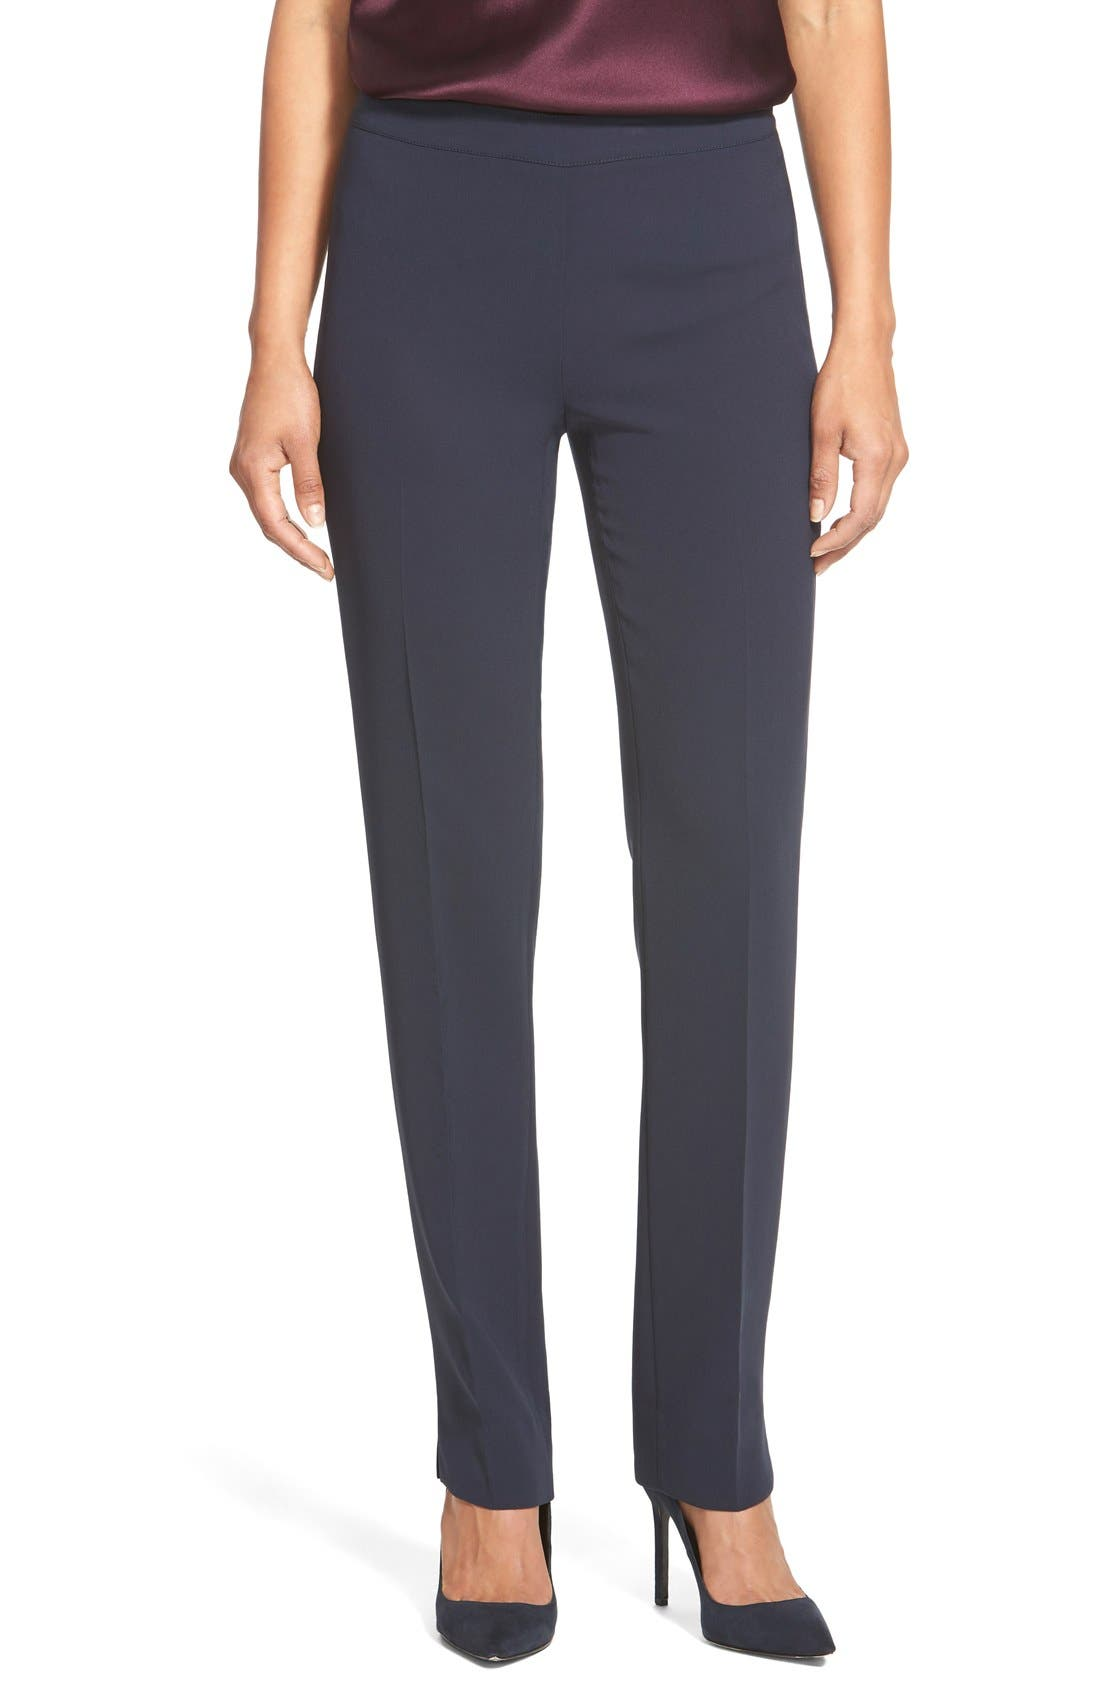 Alternate Image 1 Selected - Lafayette 148 New York 'Bleecker - Finesse Crepe' Pants (Regular & Petite)